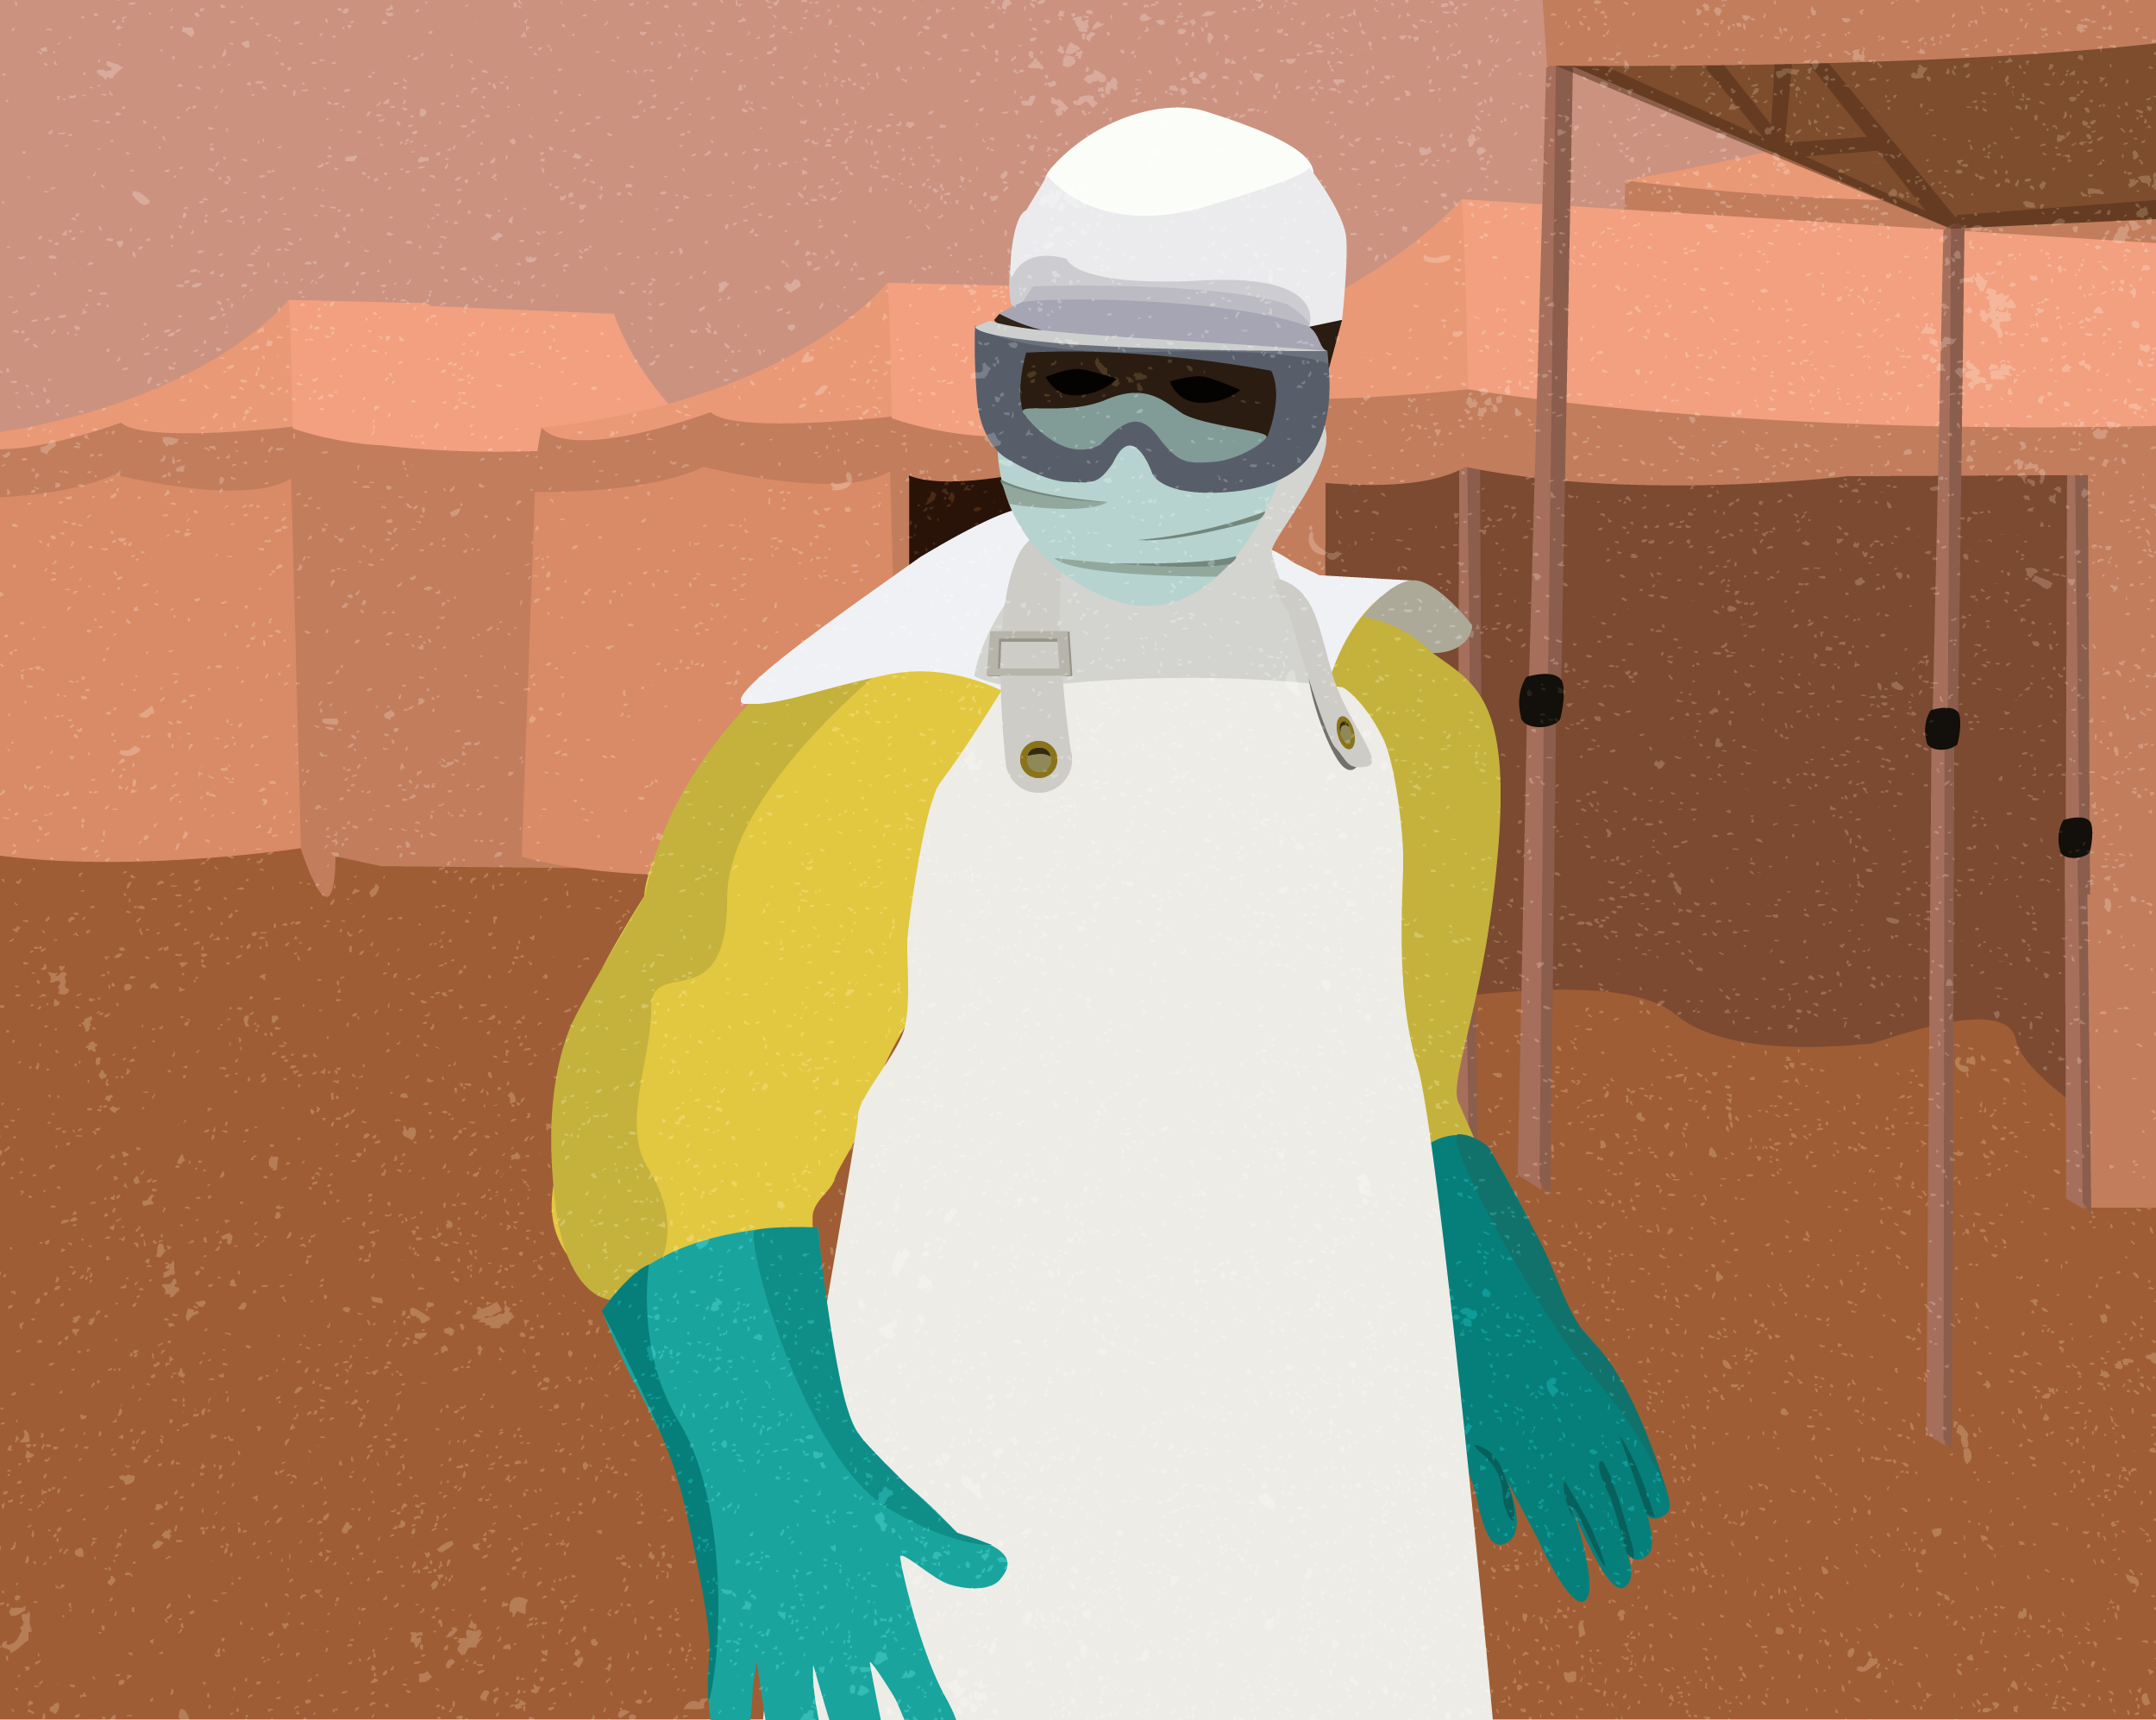 An illustration of a worker in full protective clothing—Ebola